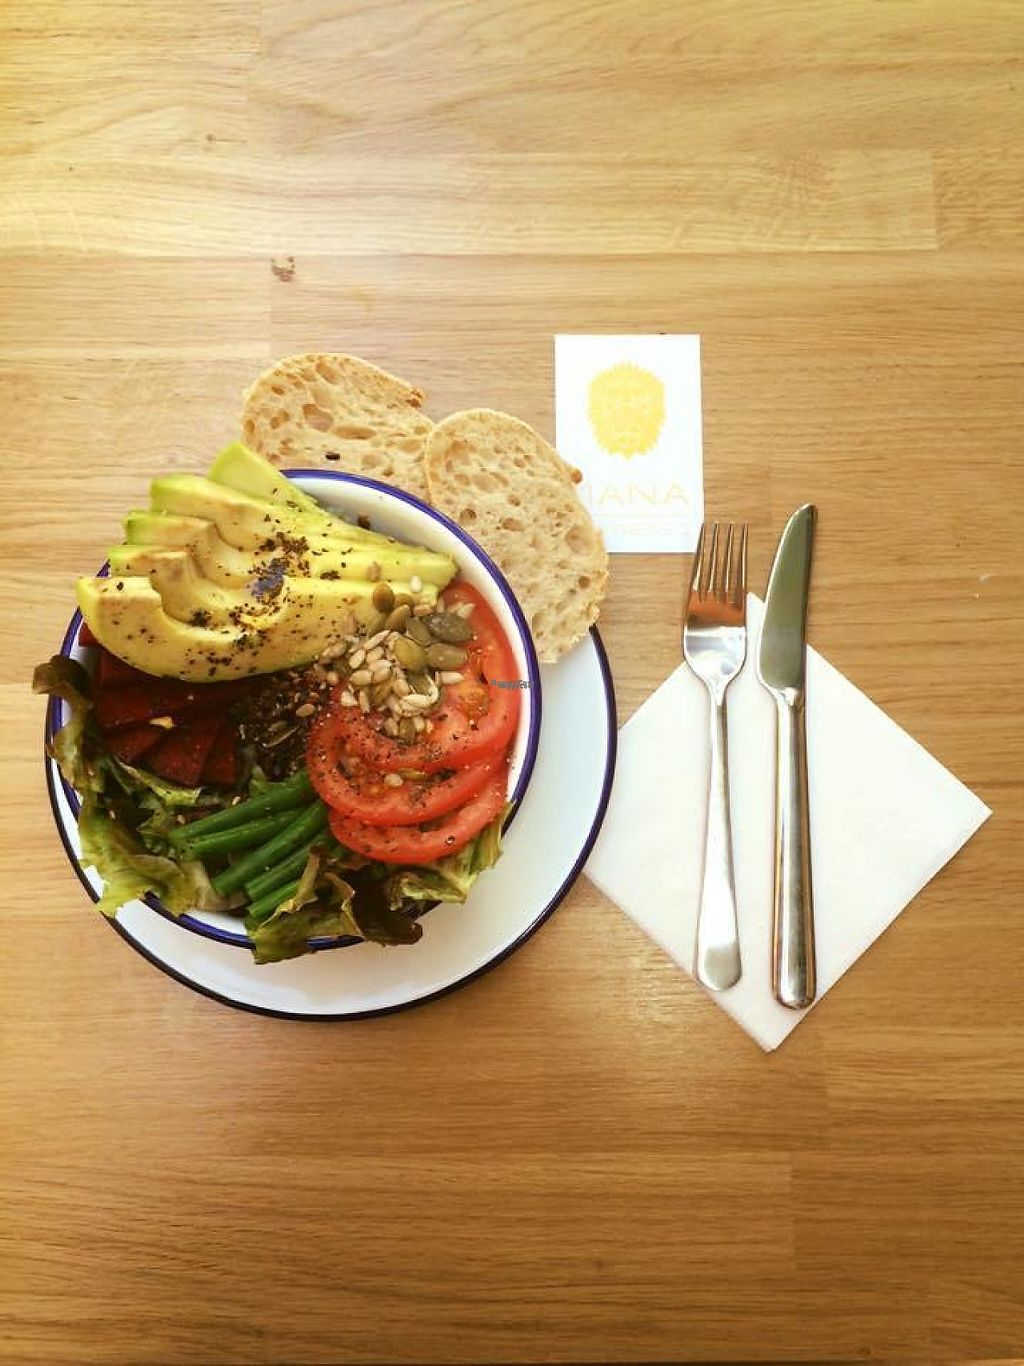 """Photo of Mana Espresso  by <a href=""""/members/profile/community"""">community</a> <br/>Wild rice, green beans, avocado and beetroot salad <br/> February 8, 2017  - <a href='/contact/abuse/image/86875/224342'>Report</a>"""